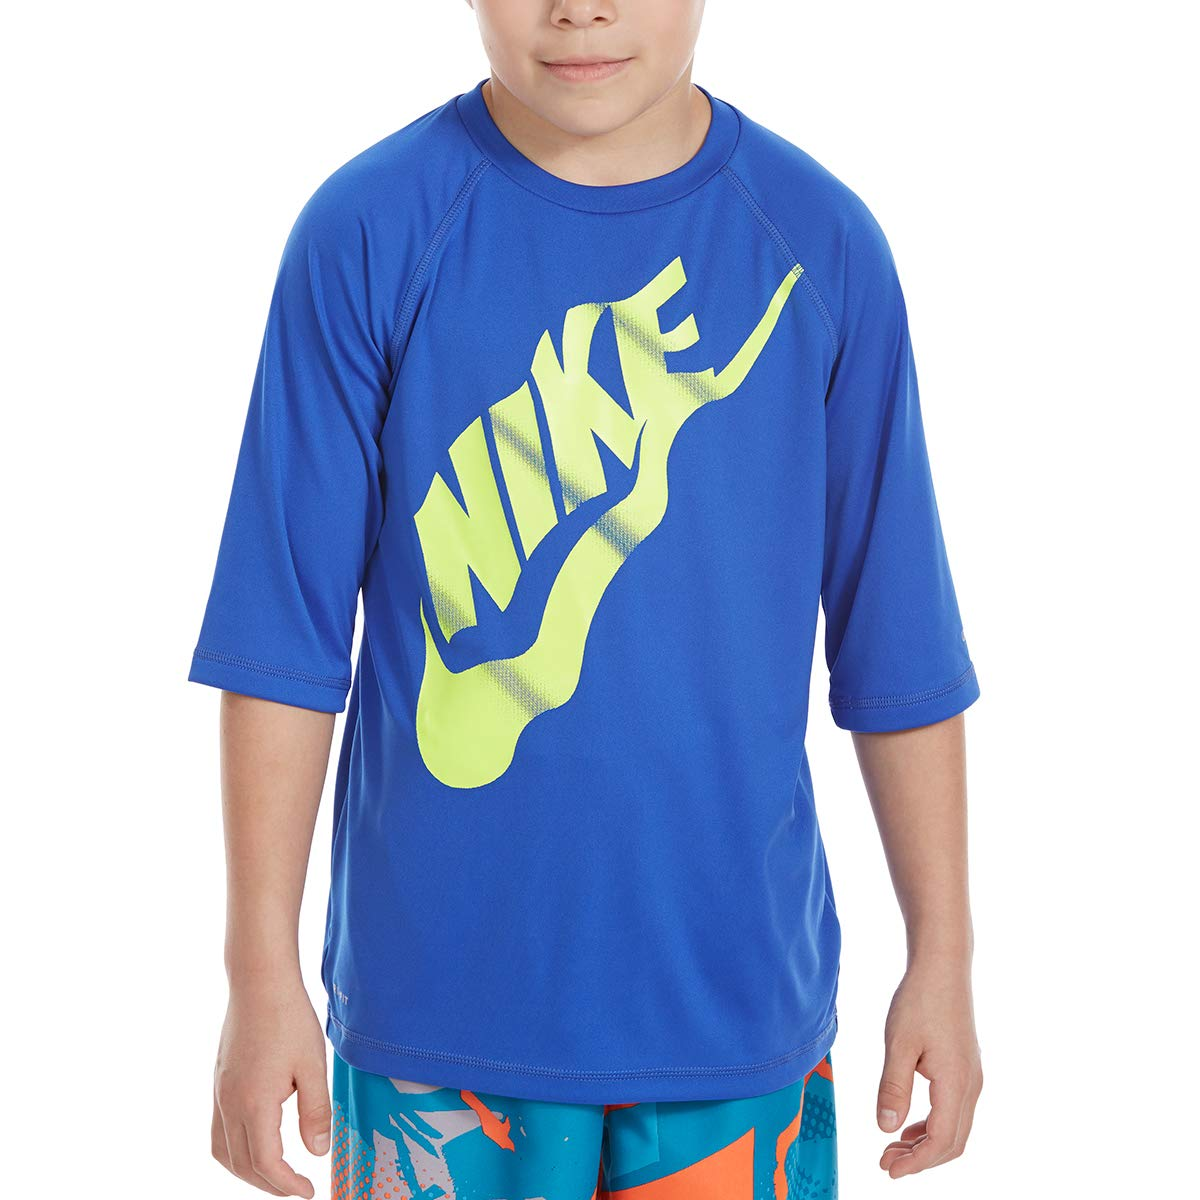 Nike Big Boys Solid Half-Sleeve HYDROGUARD Rash Guard TOP